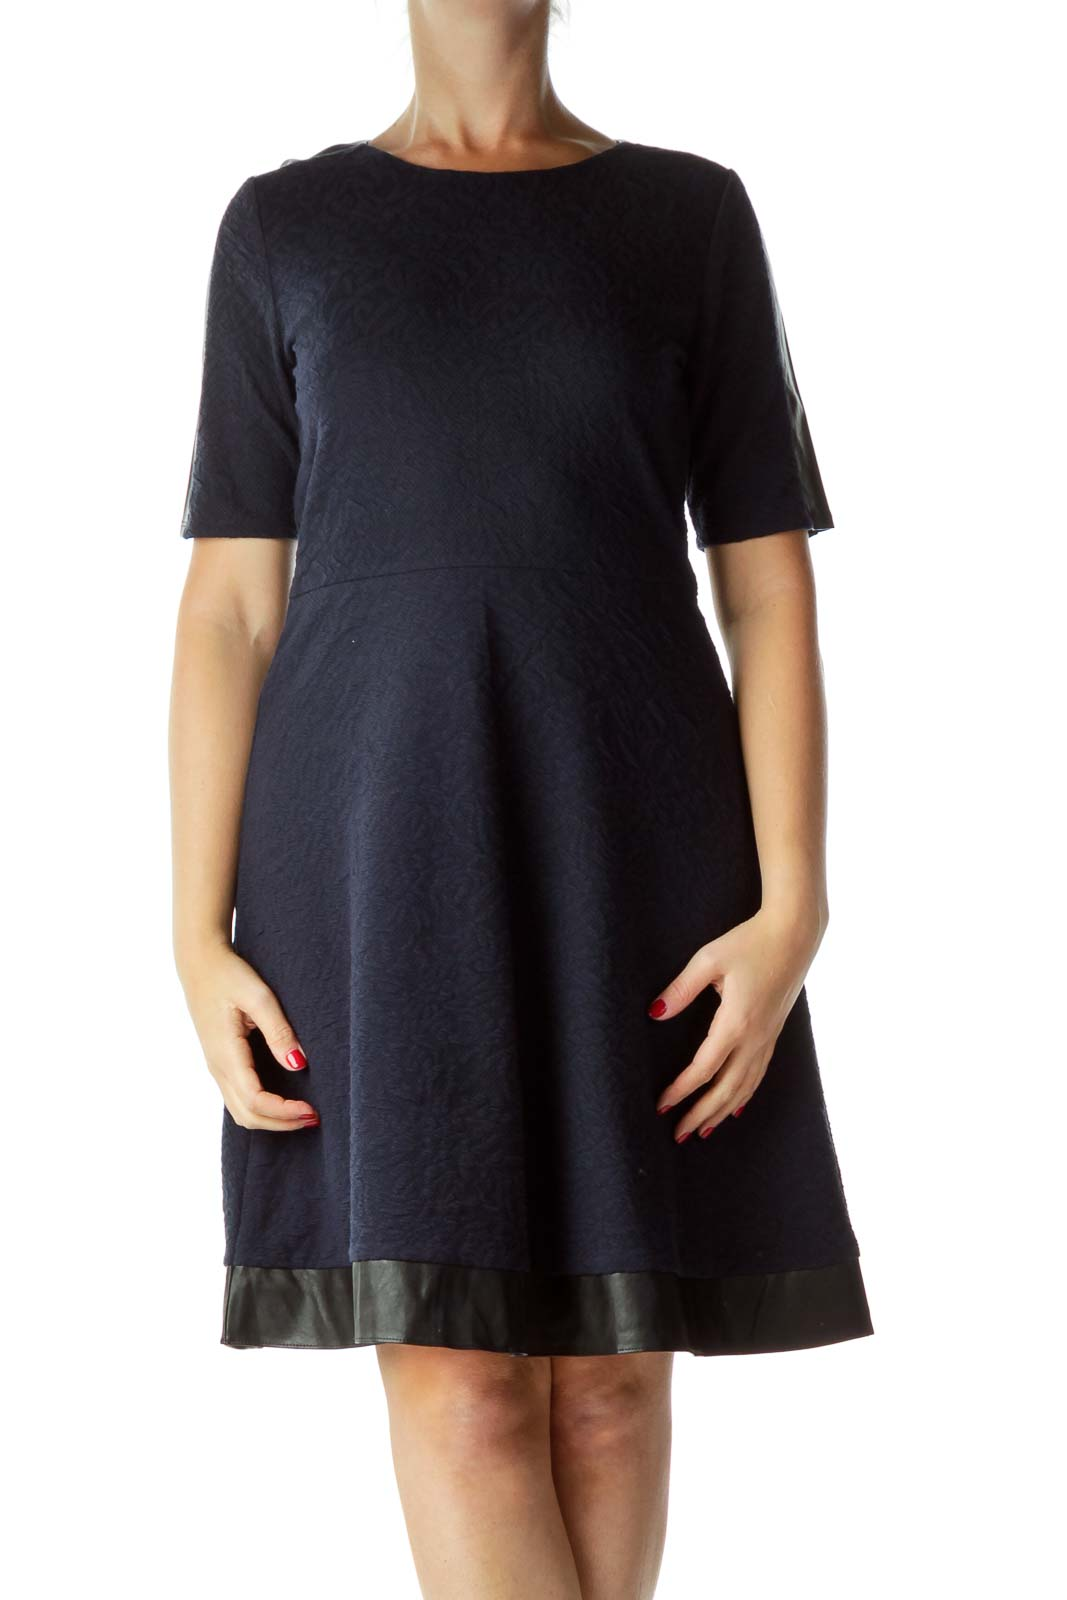 Navy Textured A-Line Dress with Faux-Leather Trim